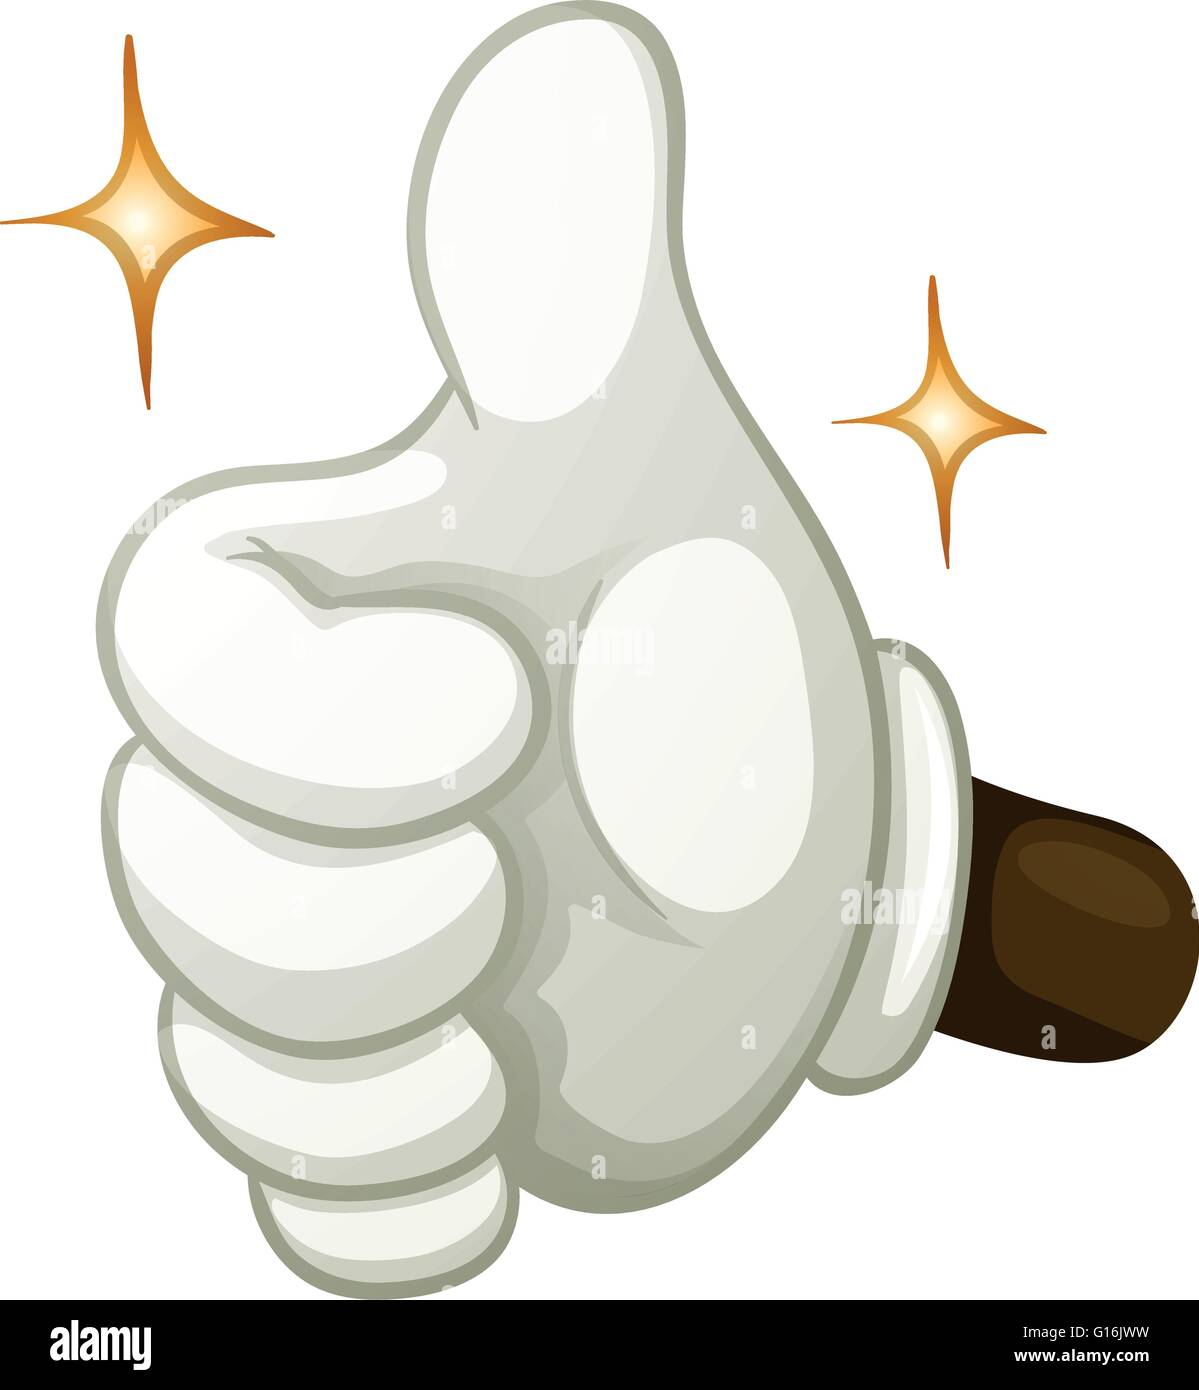 Hand gesture thumb up illustration - Stock Vector